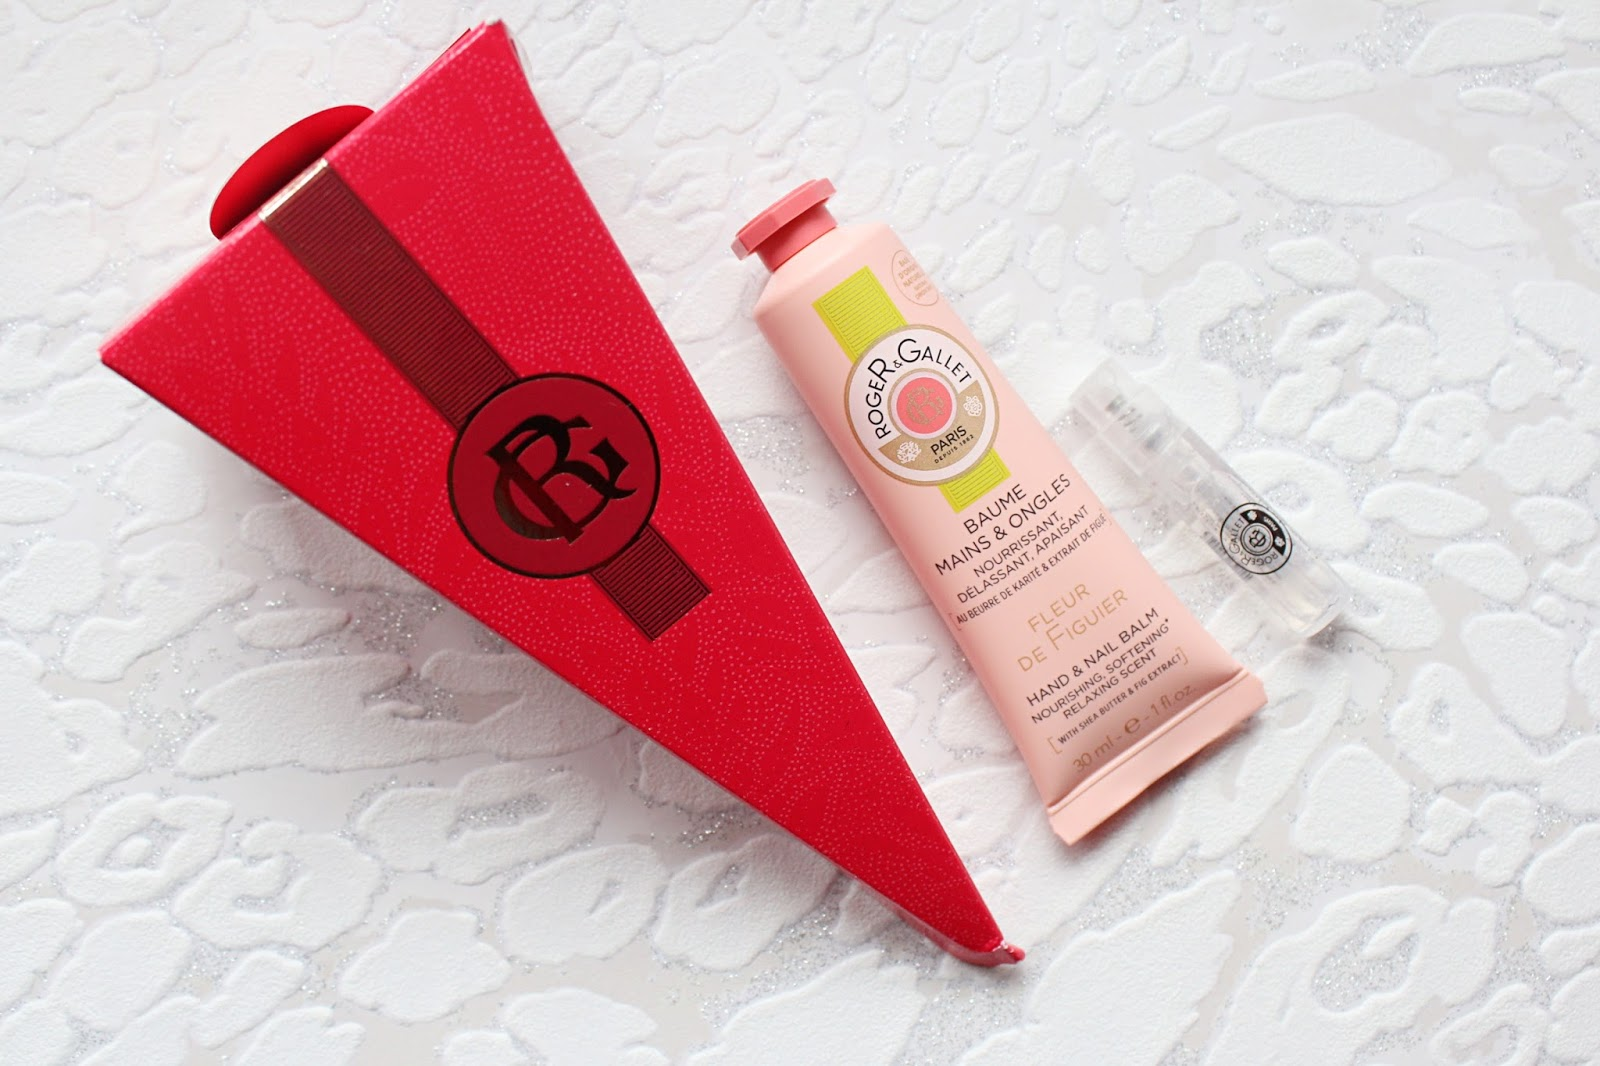 Roger & Gallet Christmas Gift Ideas